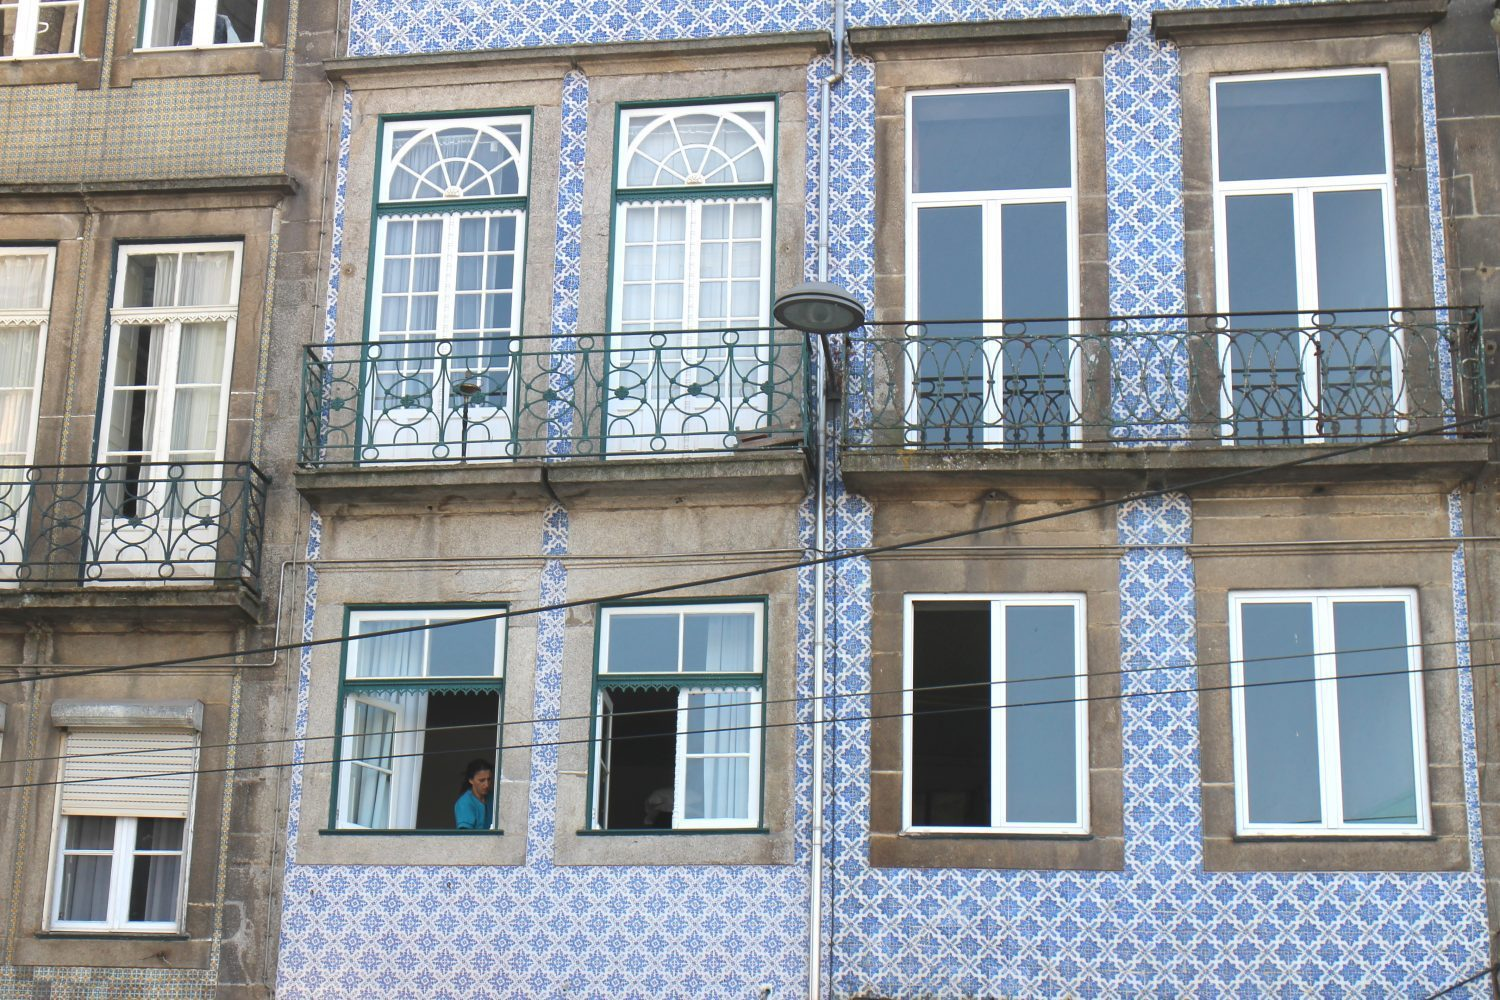 Camino Portugues and what to see and enjoy while in Porto